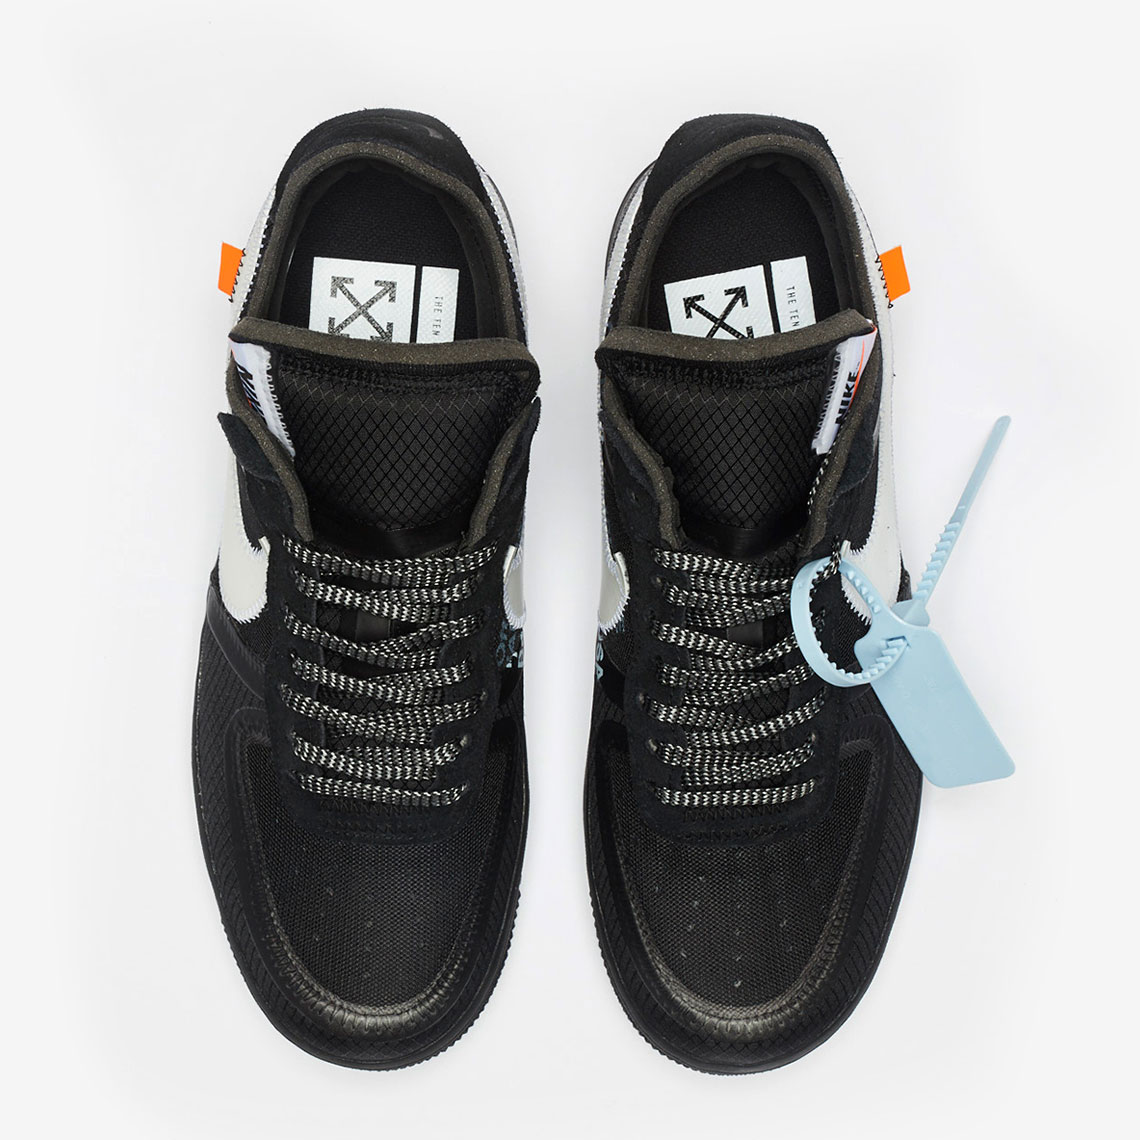 sports shoes 308bf 9e456 Off-White Nike Air Force 1 Black Store List | SneakerNews.com